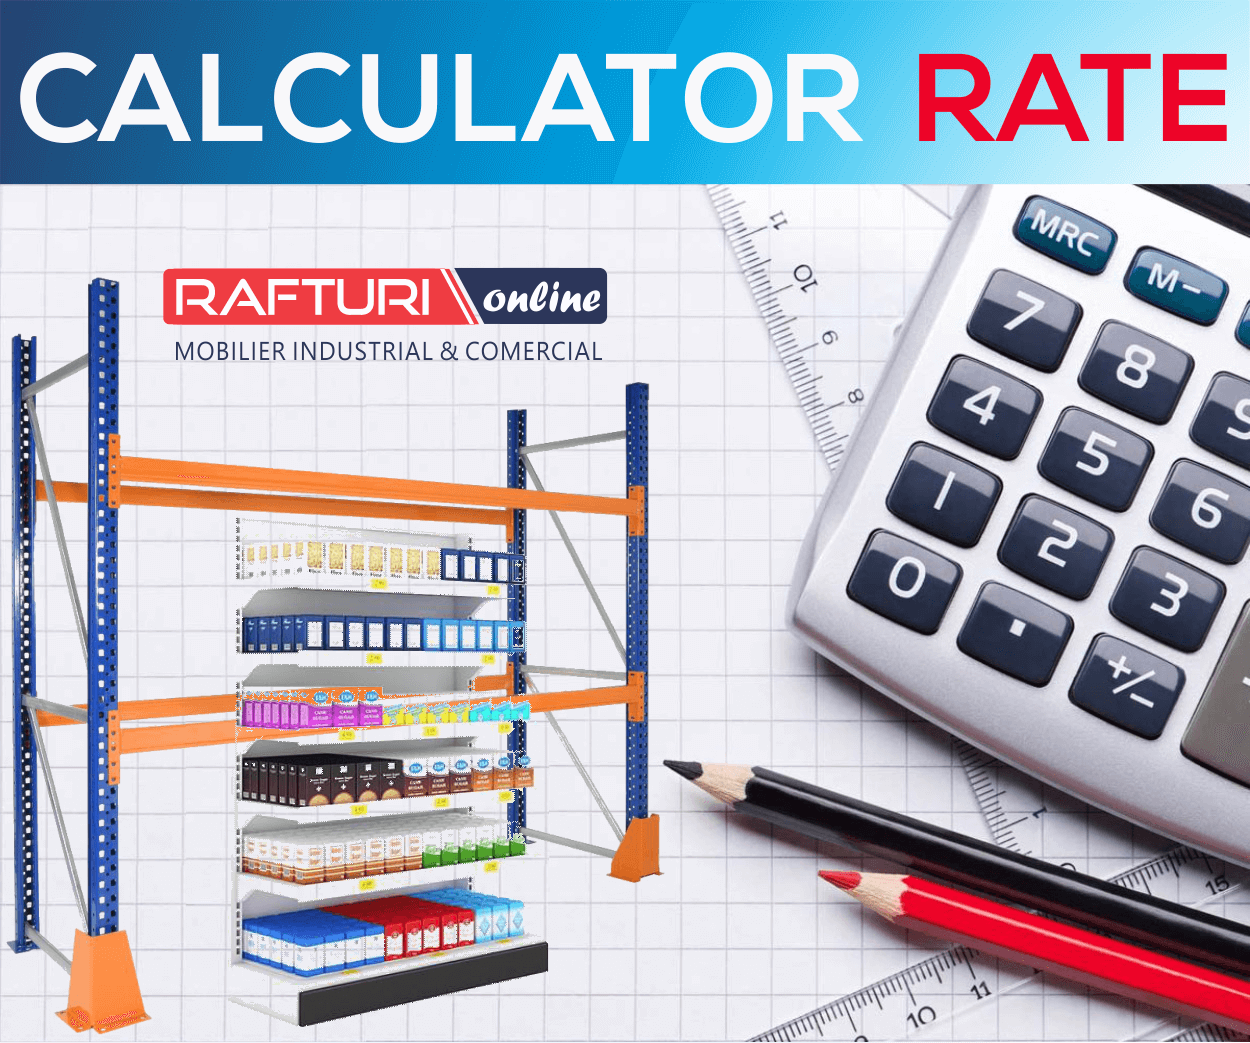 CALCULATOR RATE GRENKE